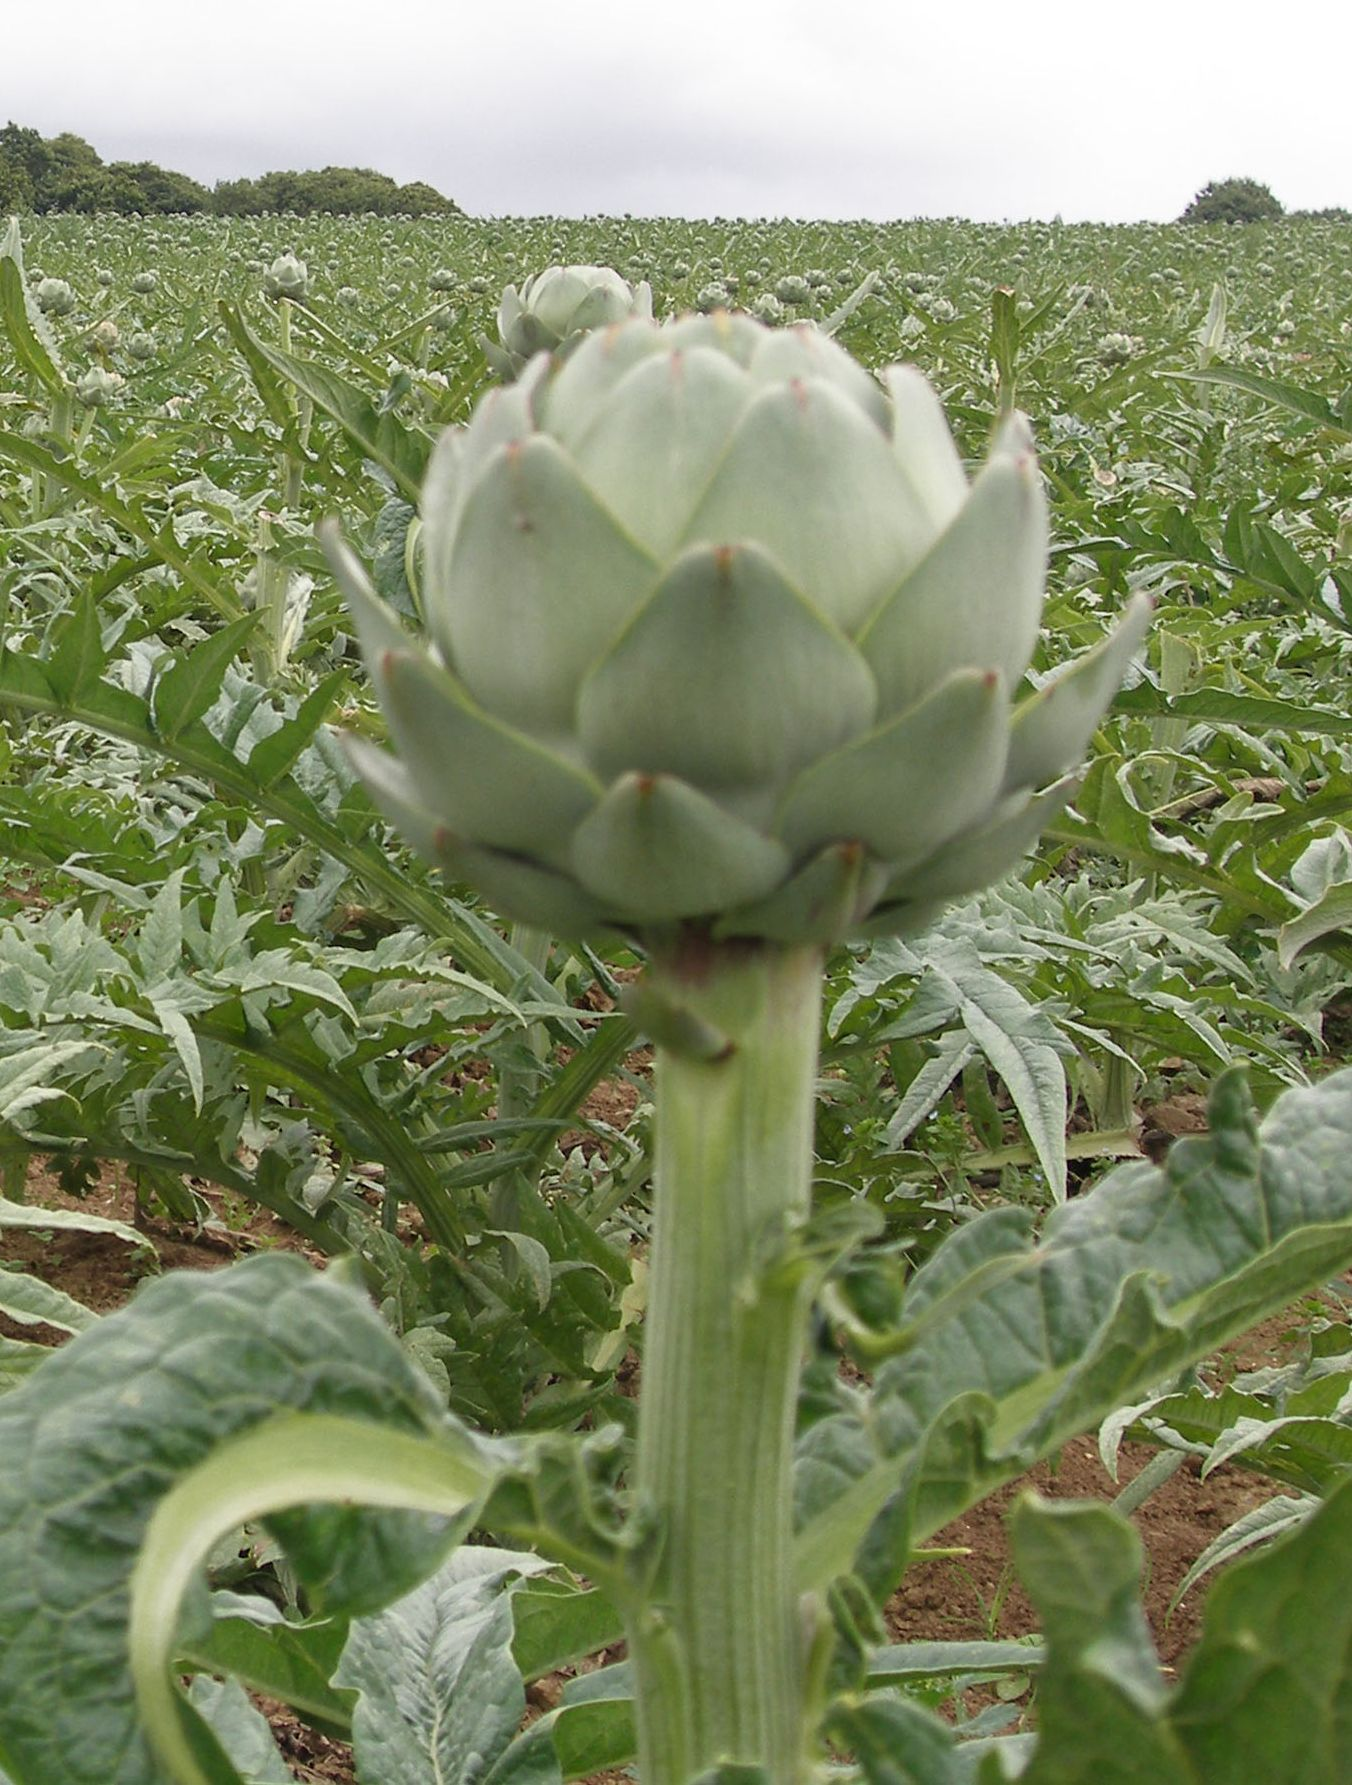 "Photo of an artichoke head and a cultivated field of artichokes.Adapted from ""Wikimedia,"" b y Author China Crisis ,2013, Retrieved 27 September, 2014, from http://commons.wikimedia.org/wiki/File:P8220094.JPG"